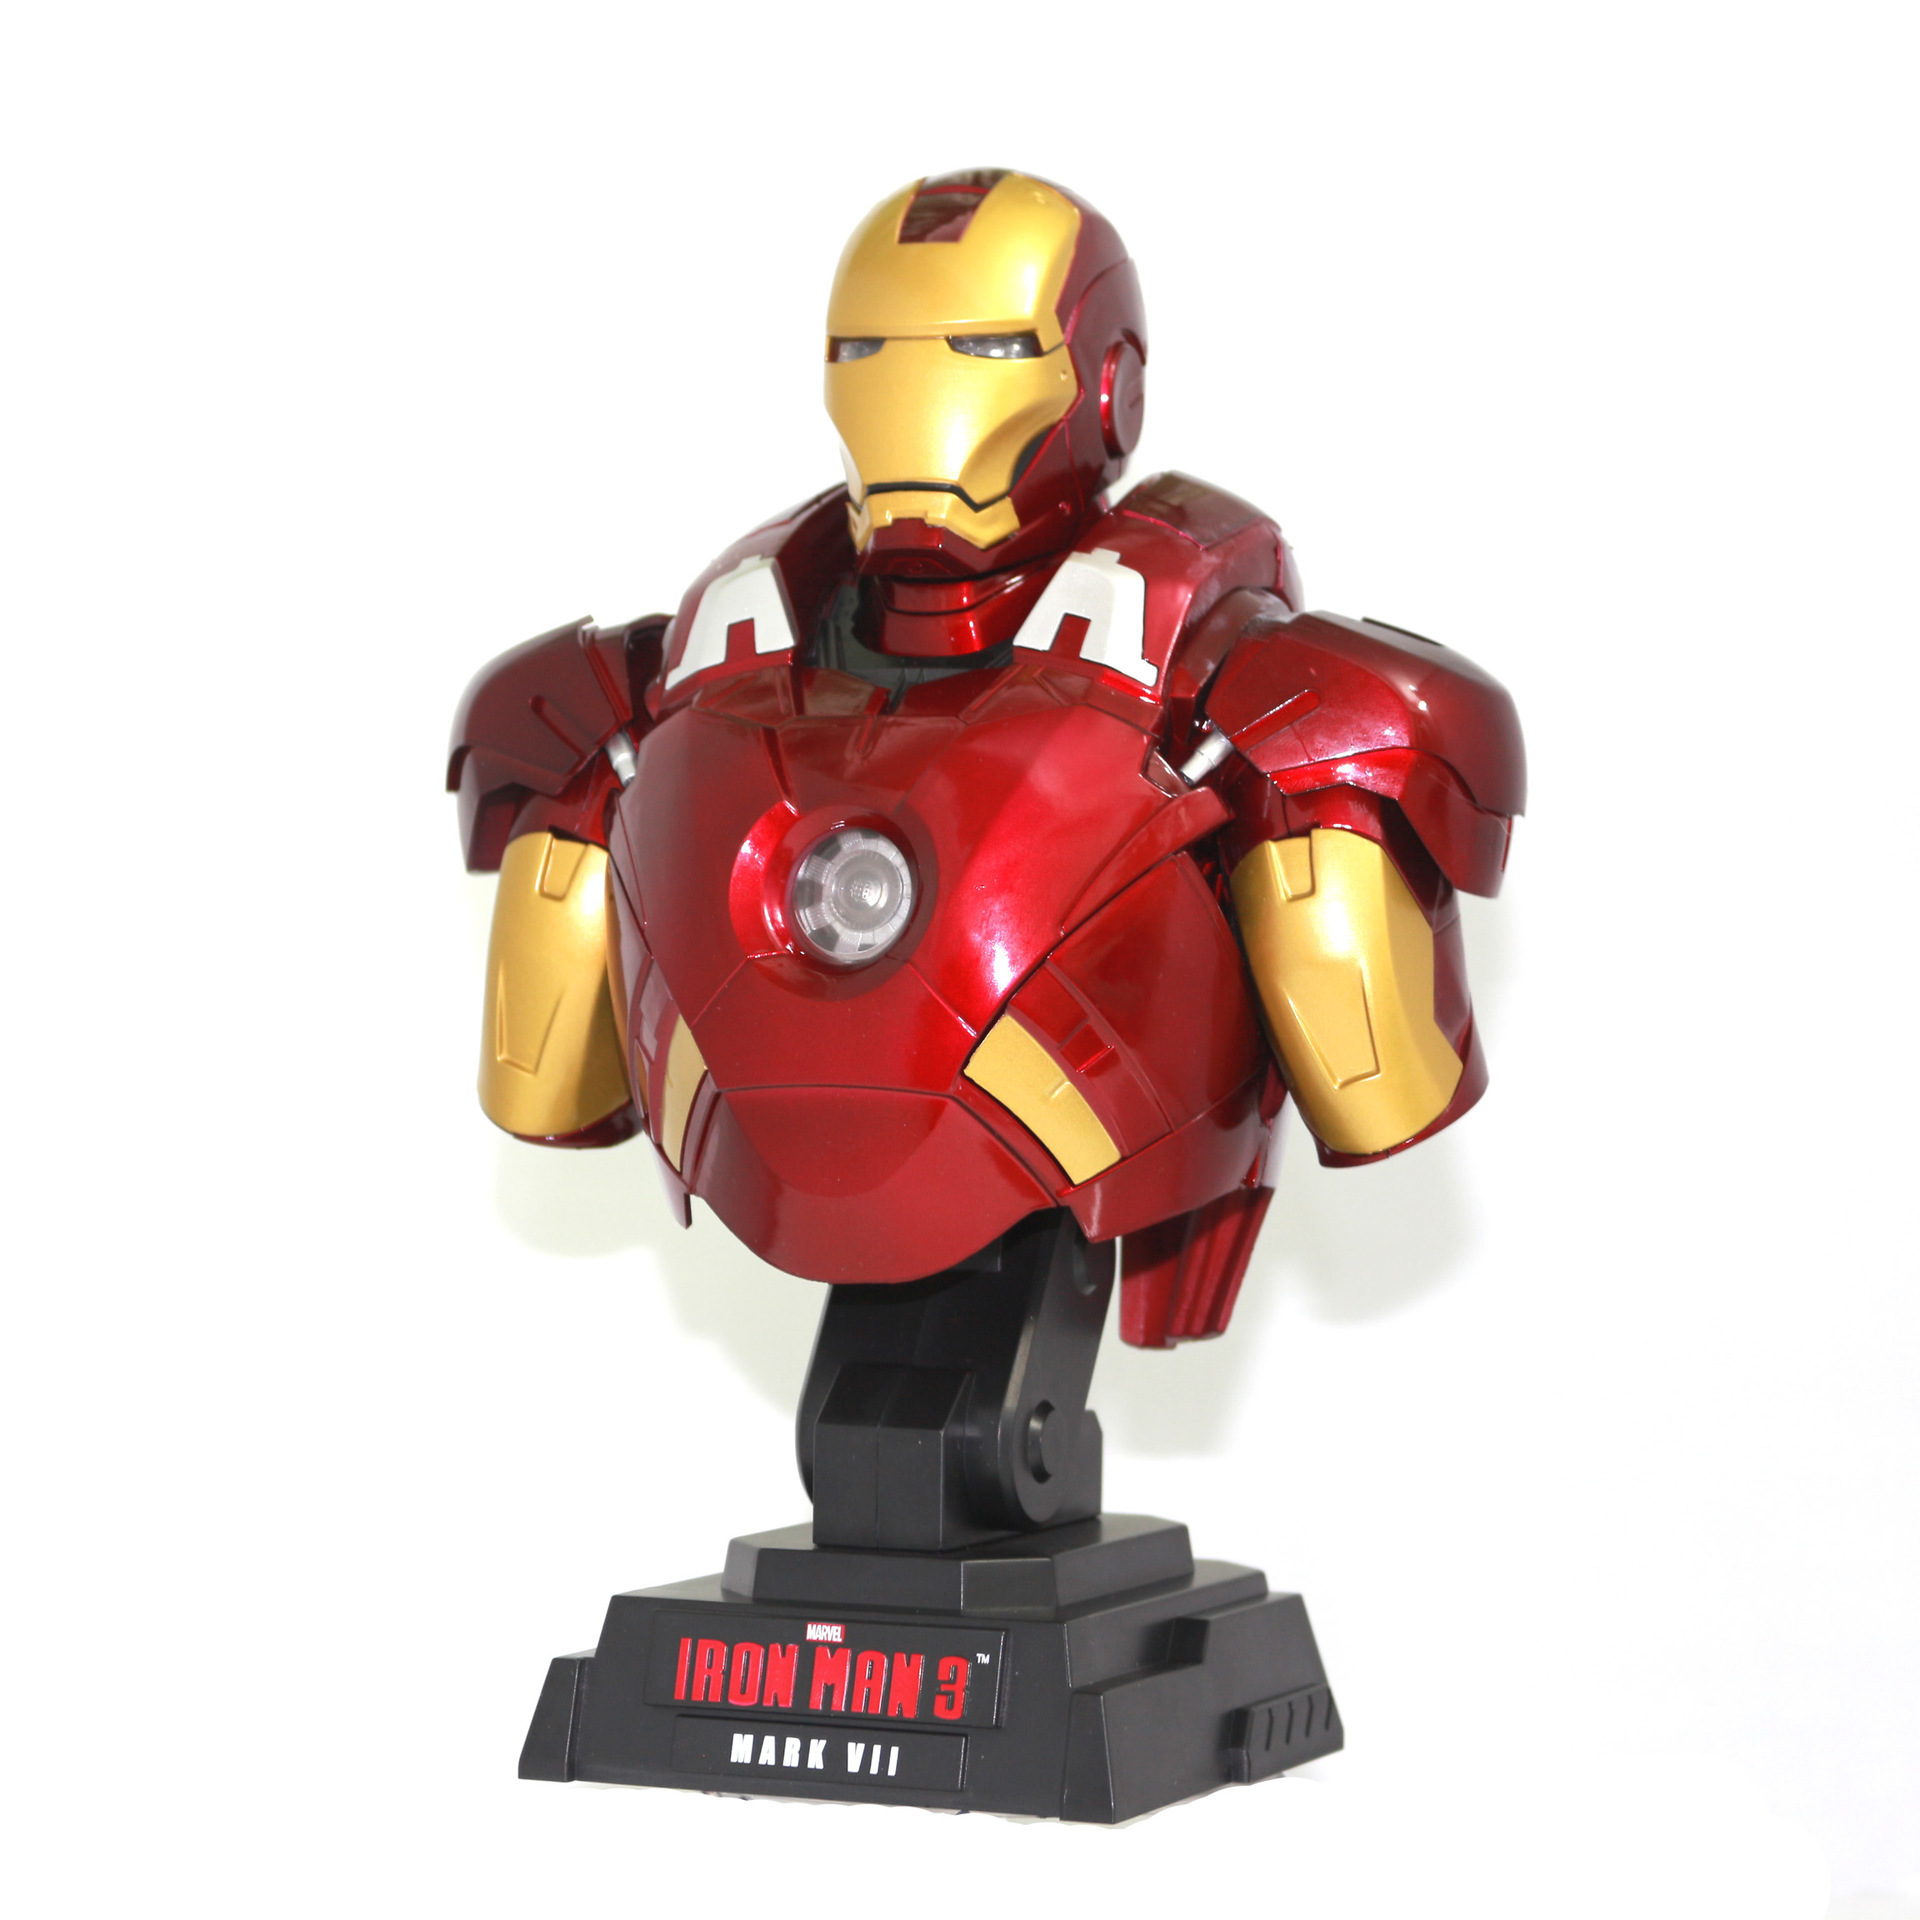 SAINTGI Marvel Avengers Assemble Iron Man Mark 7 Bust Action Figure Super Heroes PVC 23CM Collection Model Toys Dolls Kids Toys